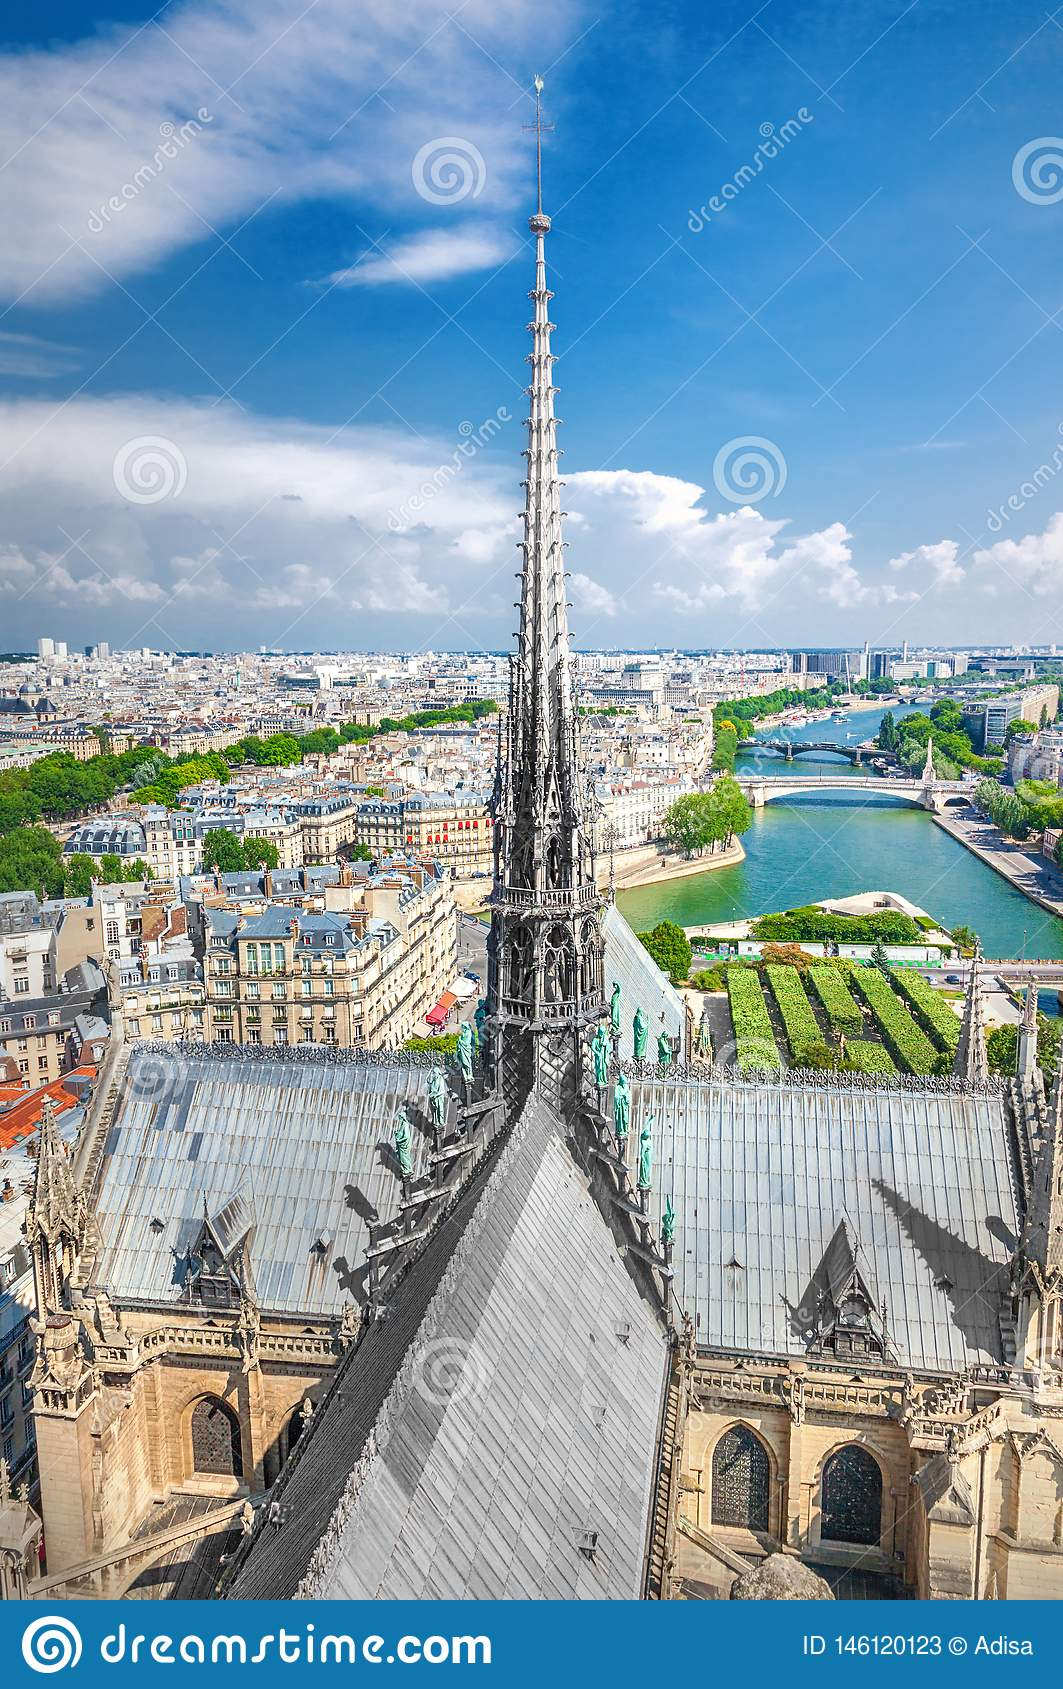 The spire of Notre Dame Cathedral